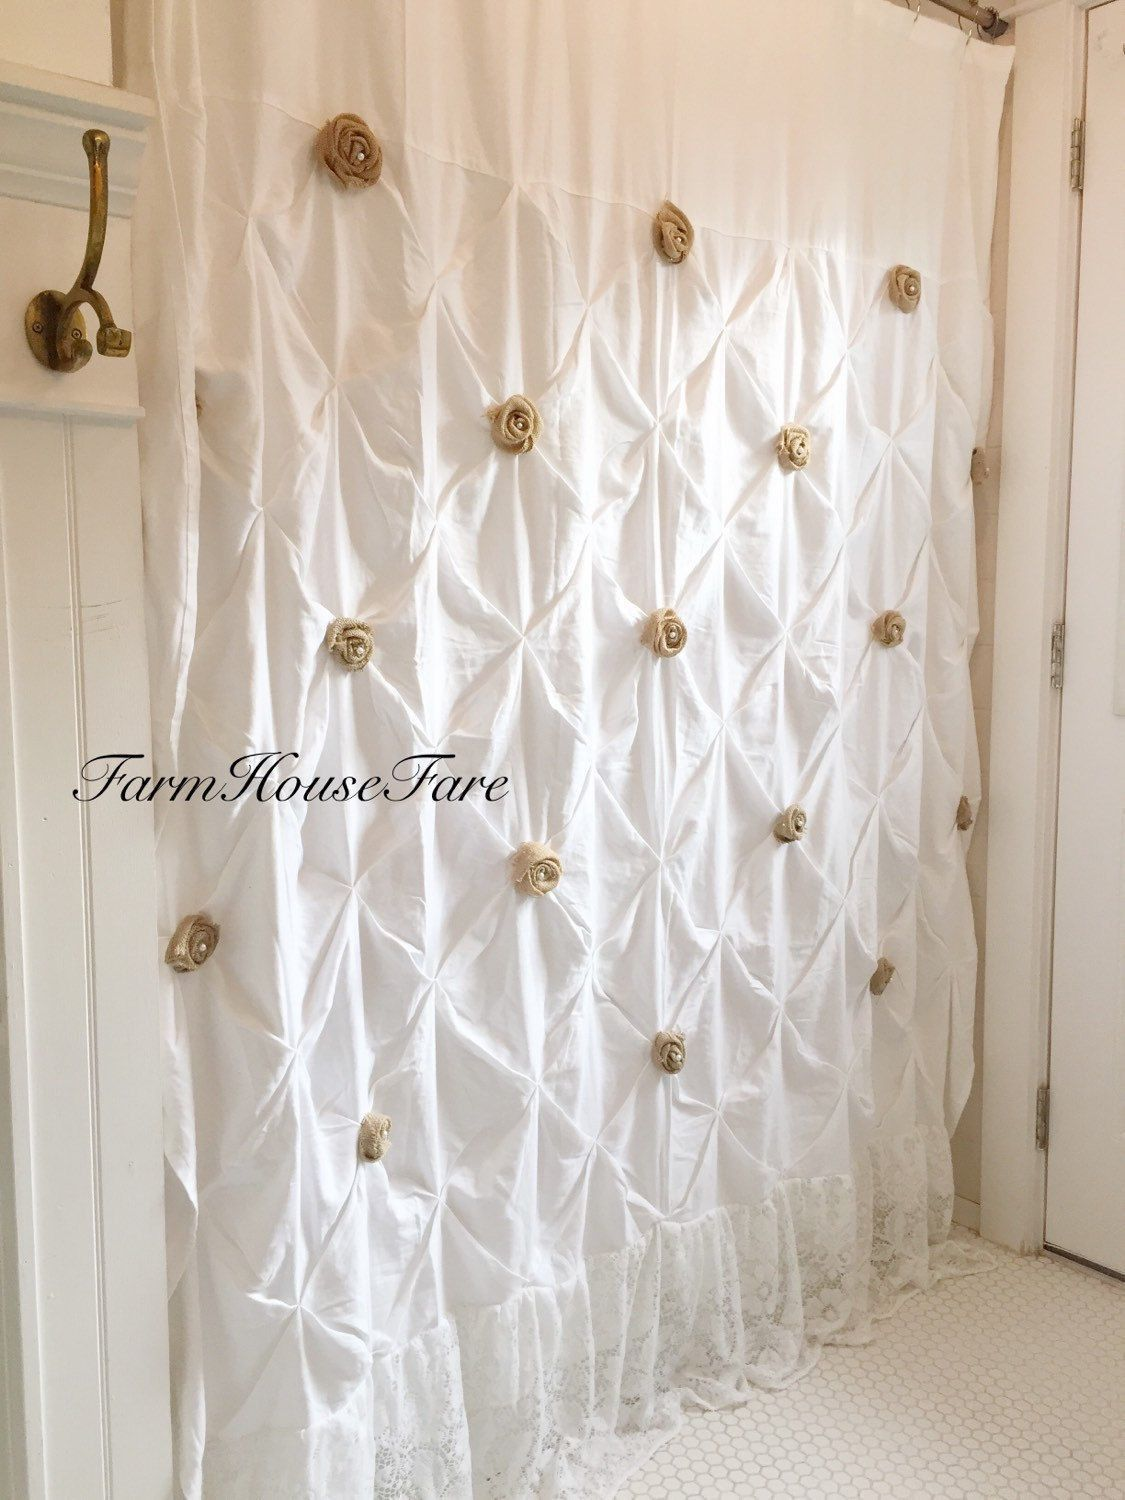 Agreeable Luxury Cream Ruffle Shower Curtain Figures Burlap White Cotton With Handmade